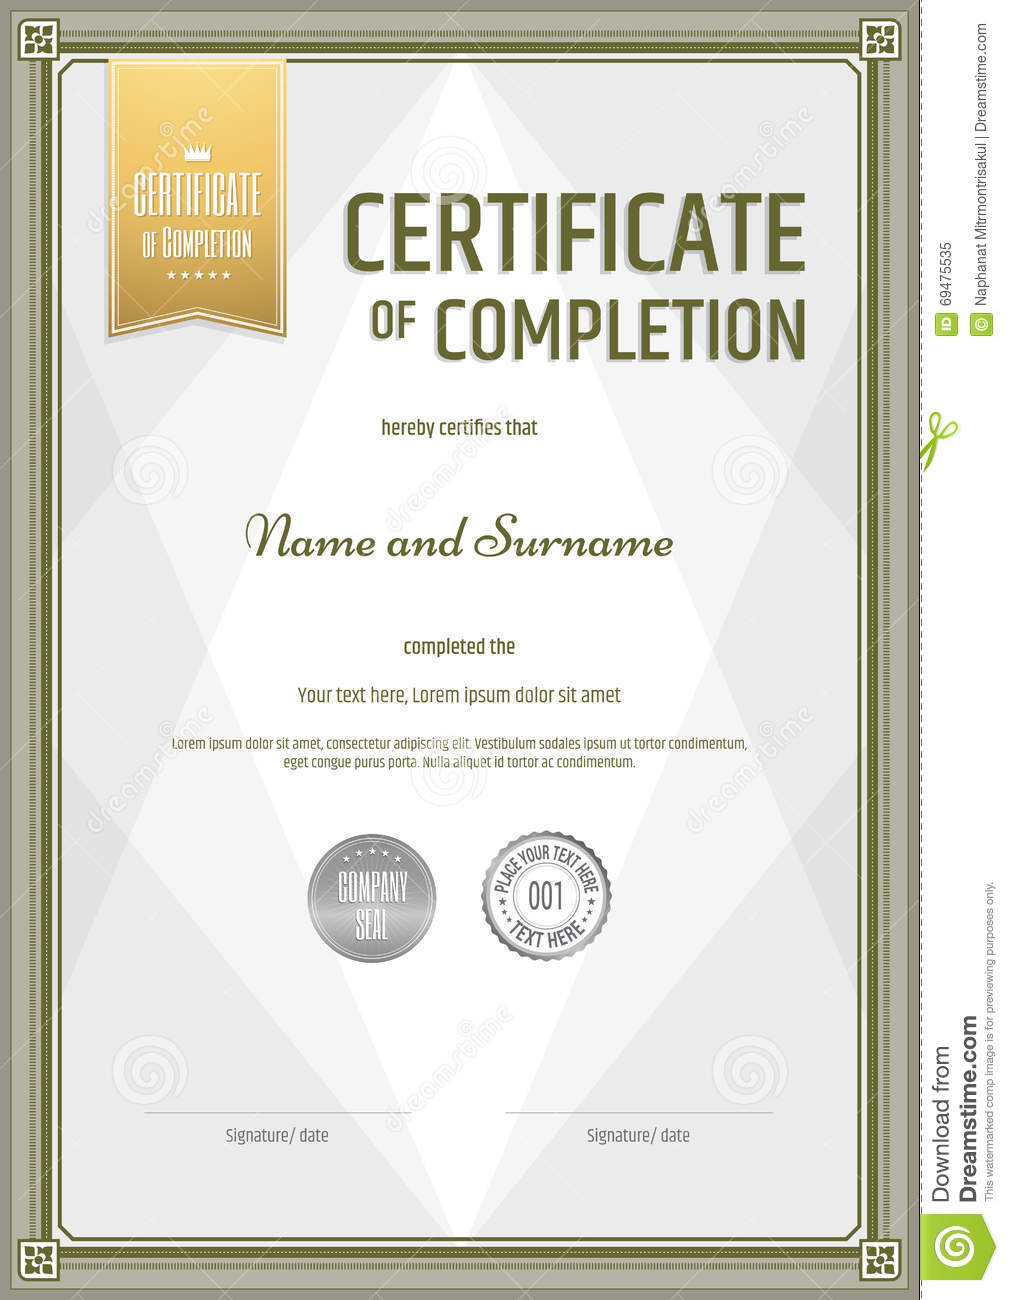 Certificate Of Completion Template In Portrait Stock